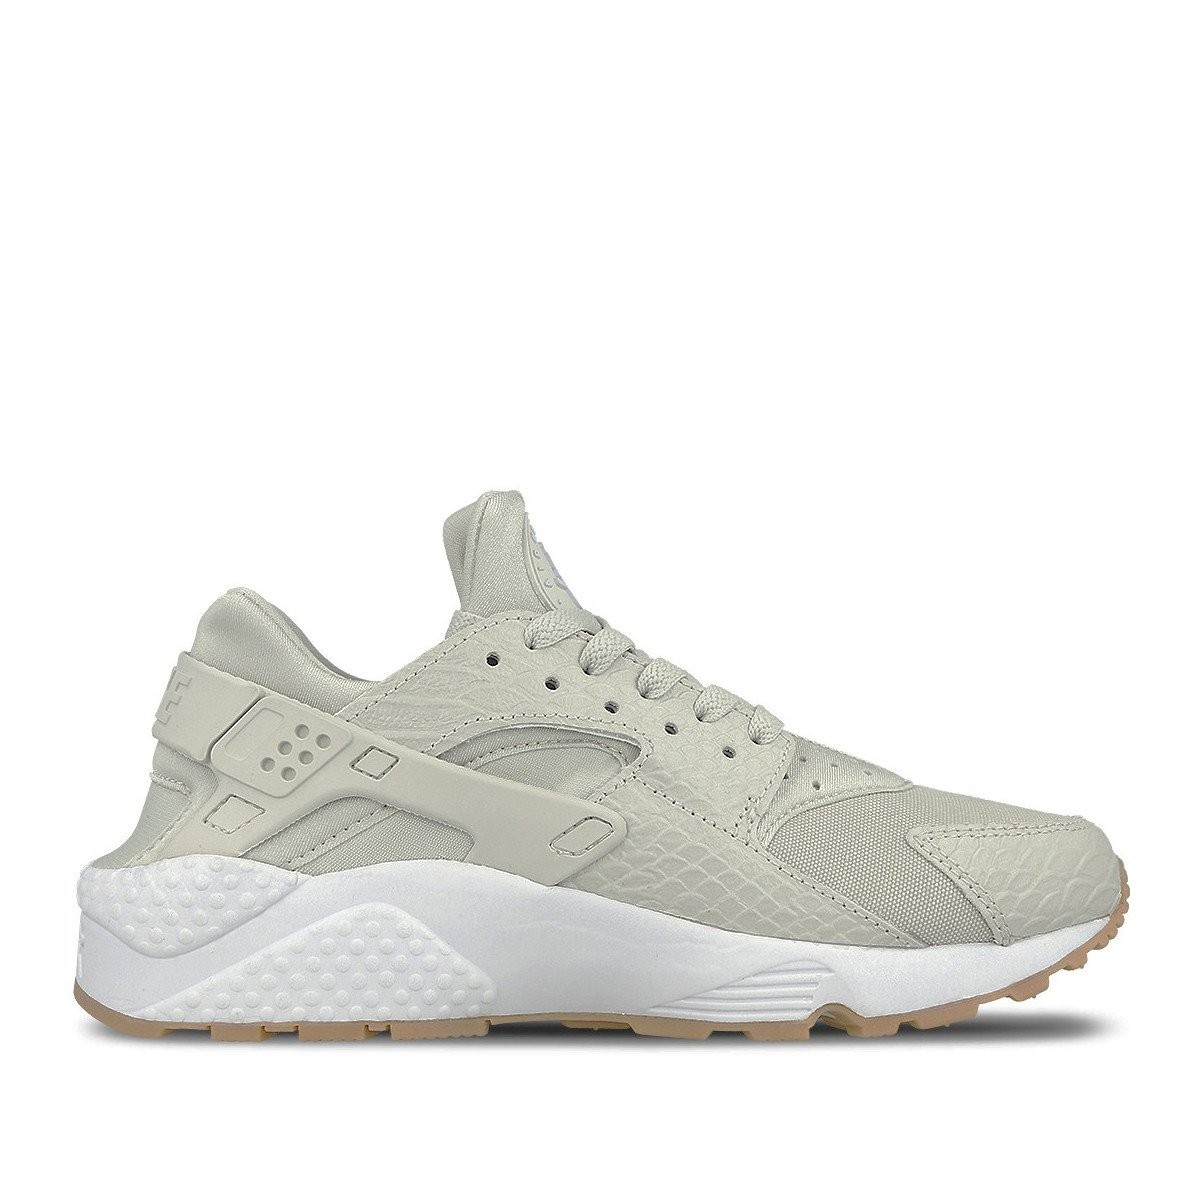 859429-004 Nike Dames Air Huarache Run SE Schoenen - Light Bone/Wit